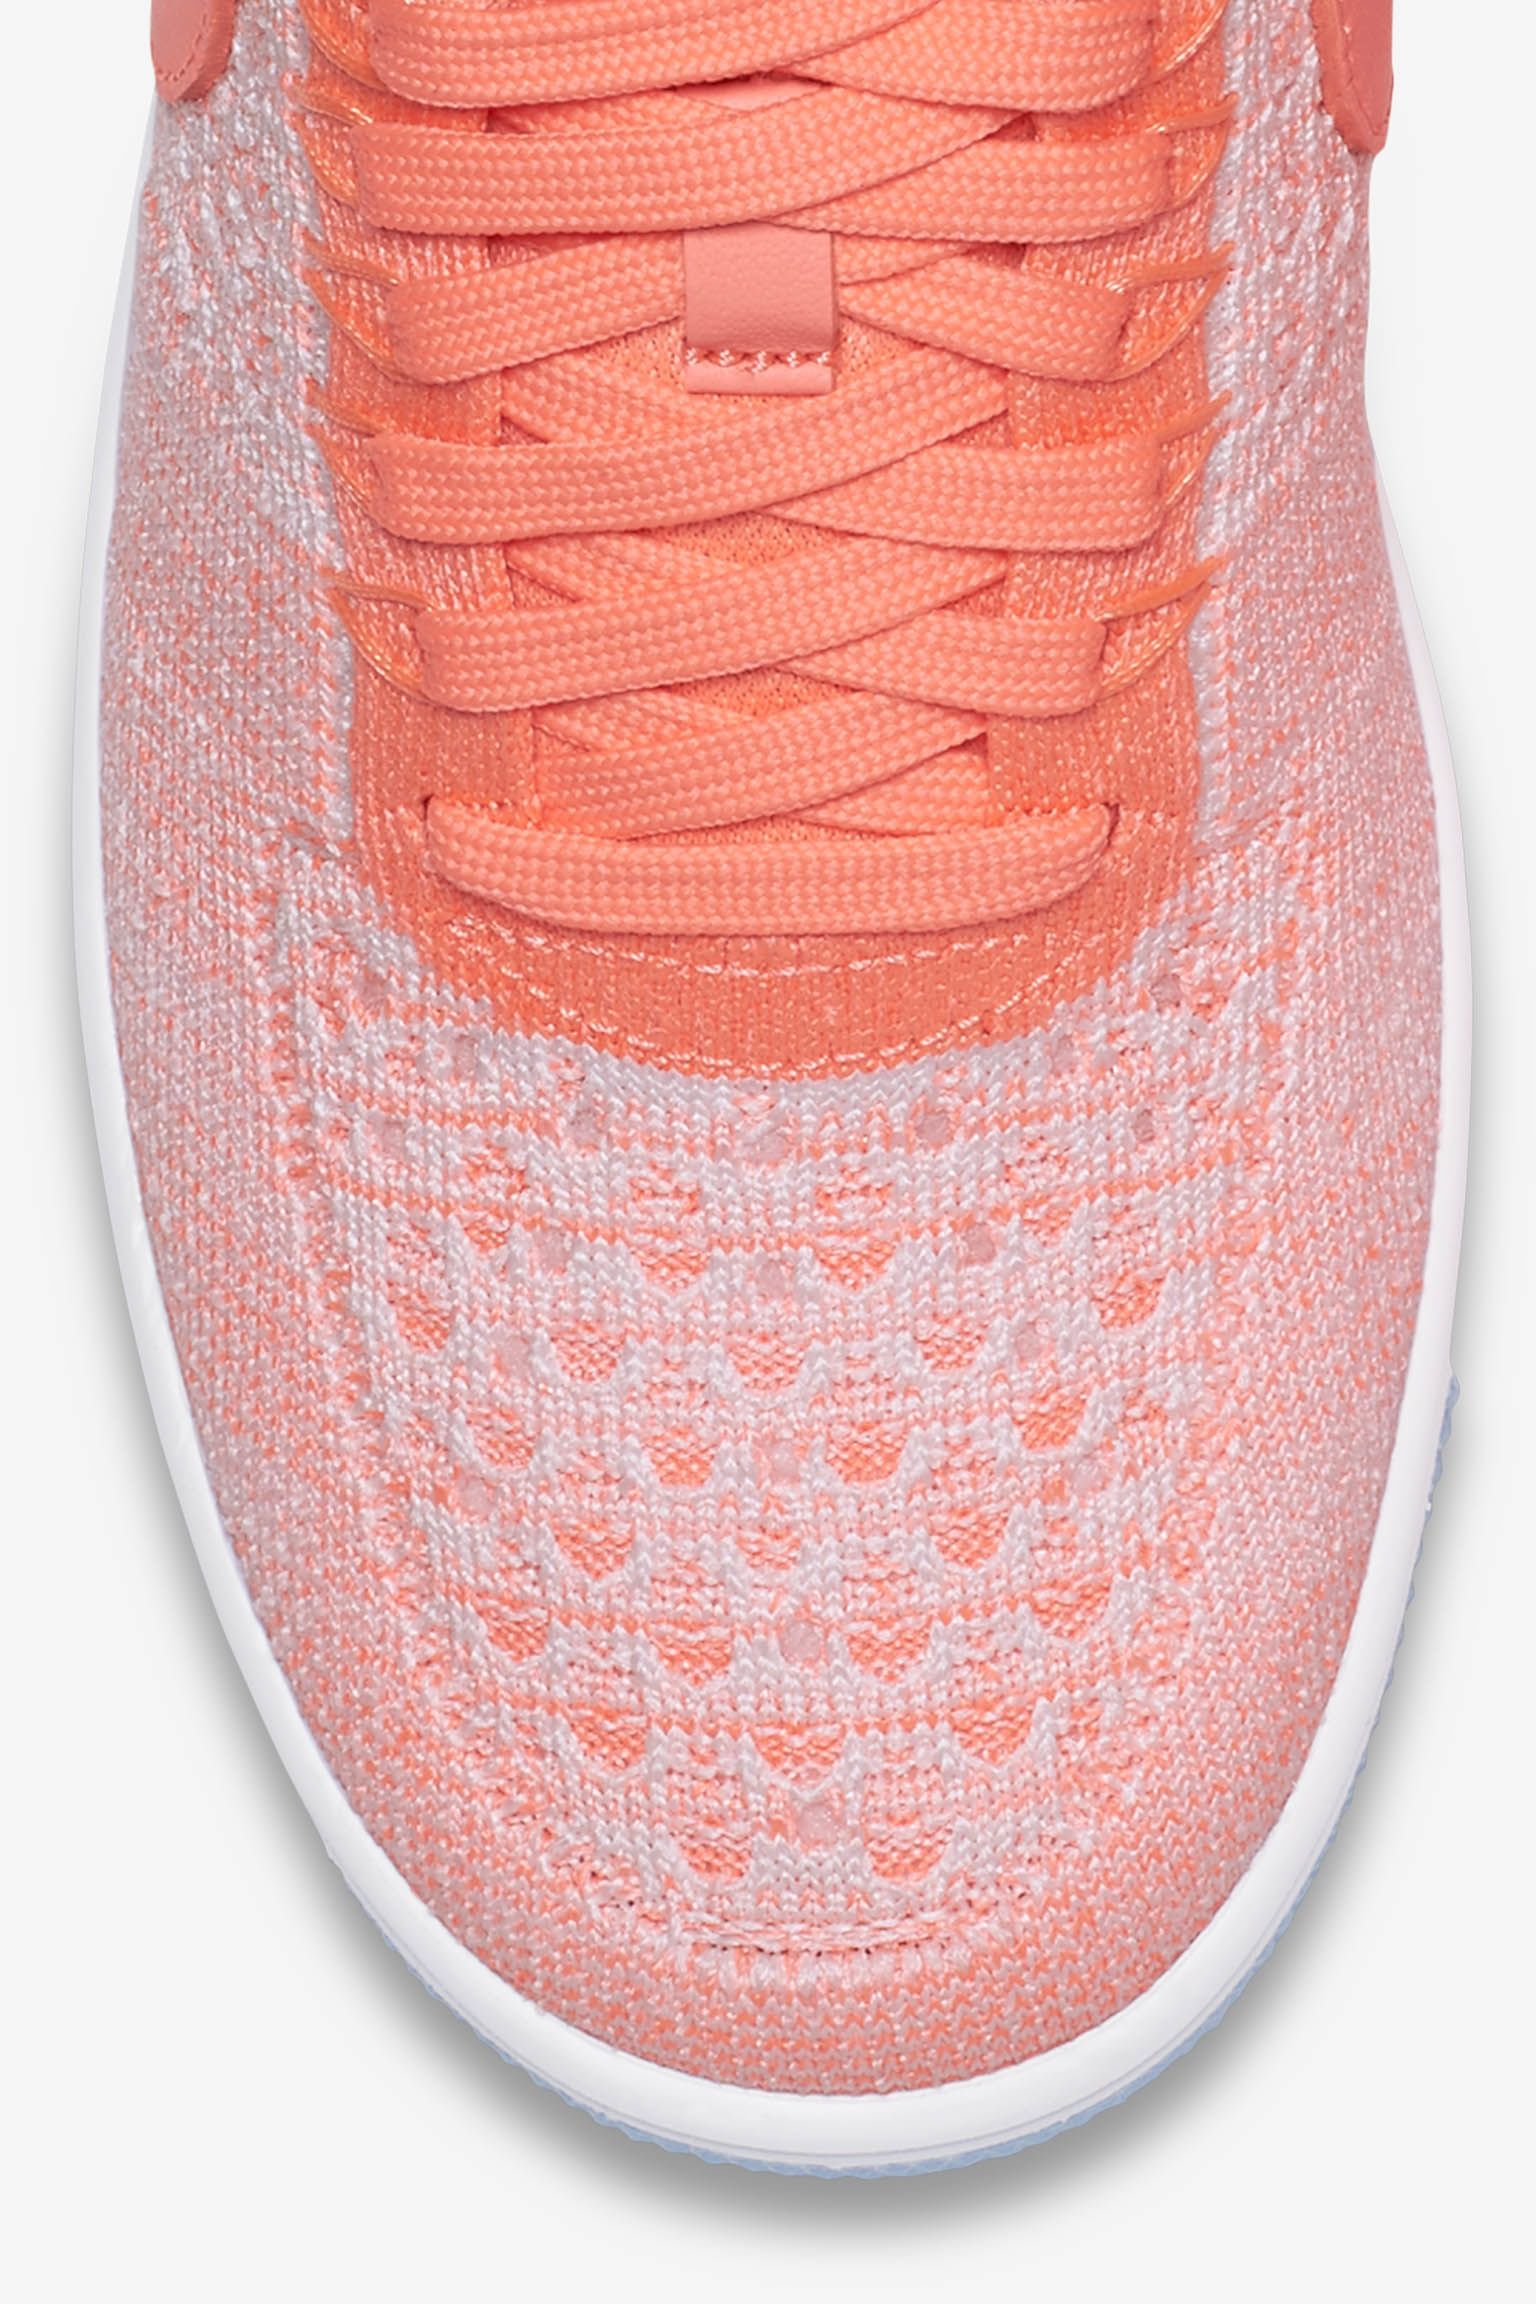 Women's Nike Air Force 1 Ultra Flyknit Low 'Atomic Air' Release Date